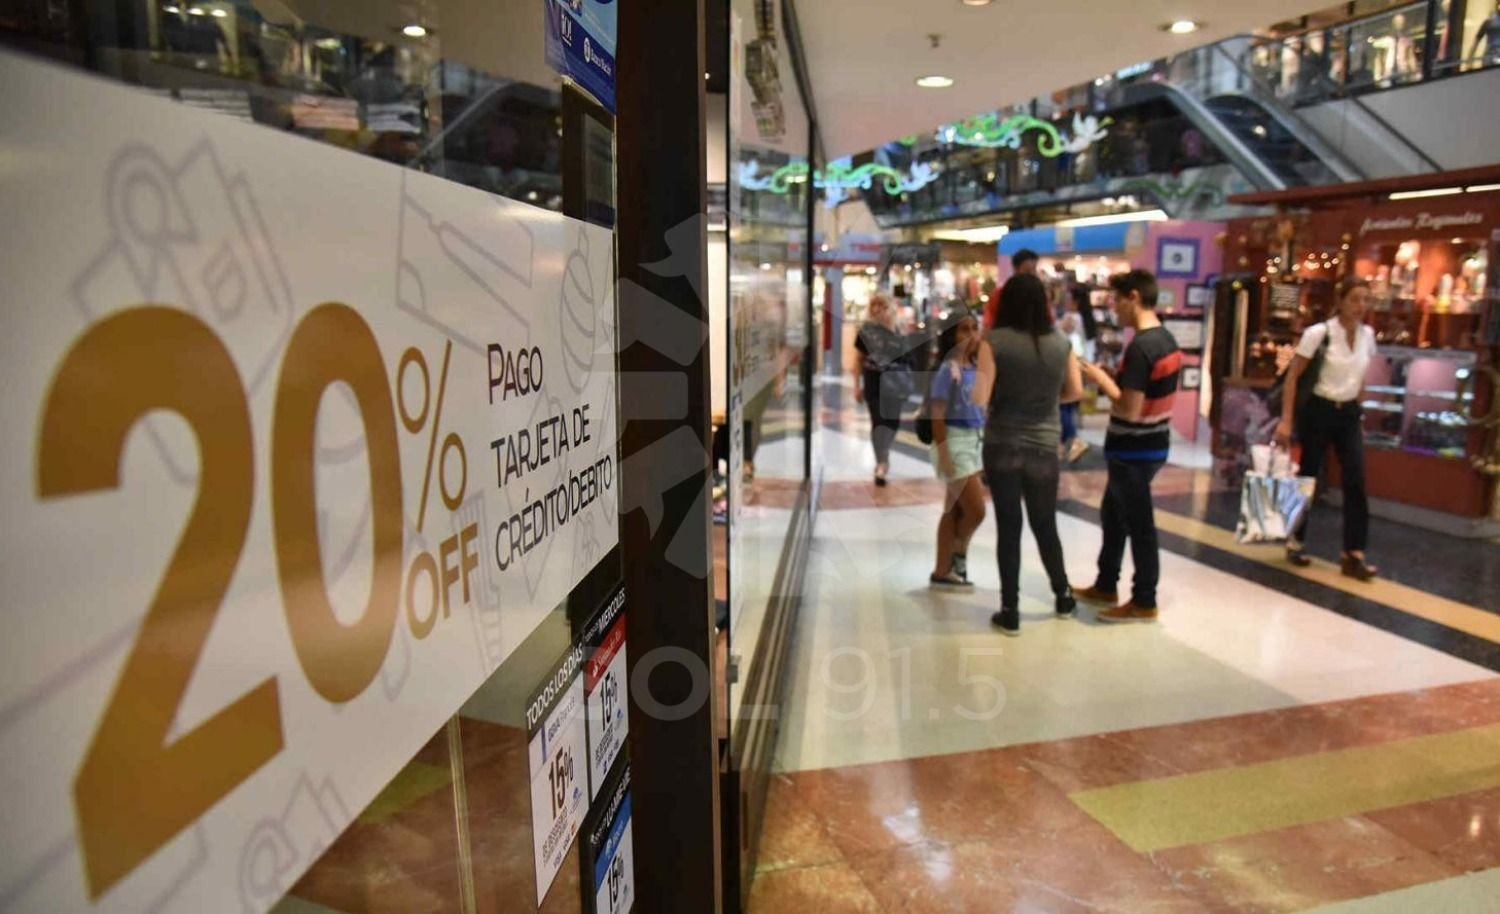 Crecieron las ventas en supermercados y shoppings